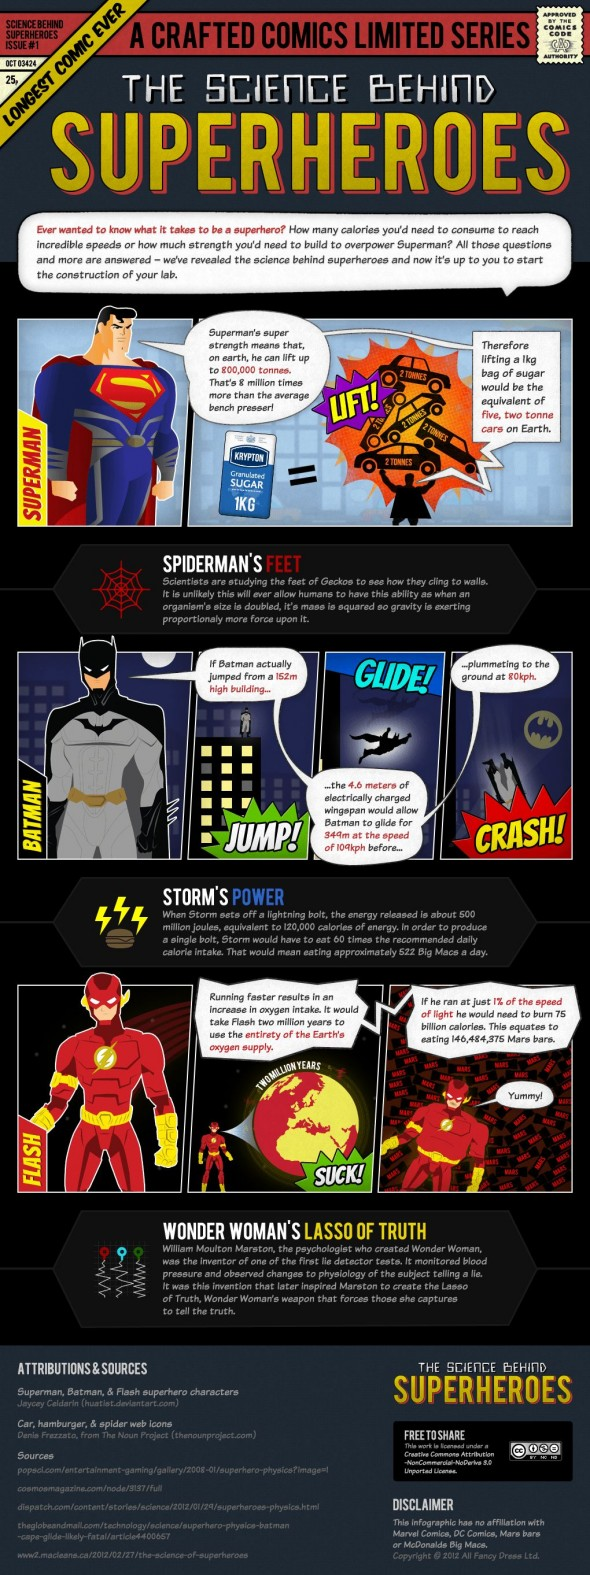 The Science Behind Superheroes